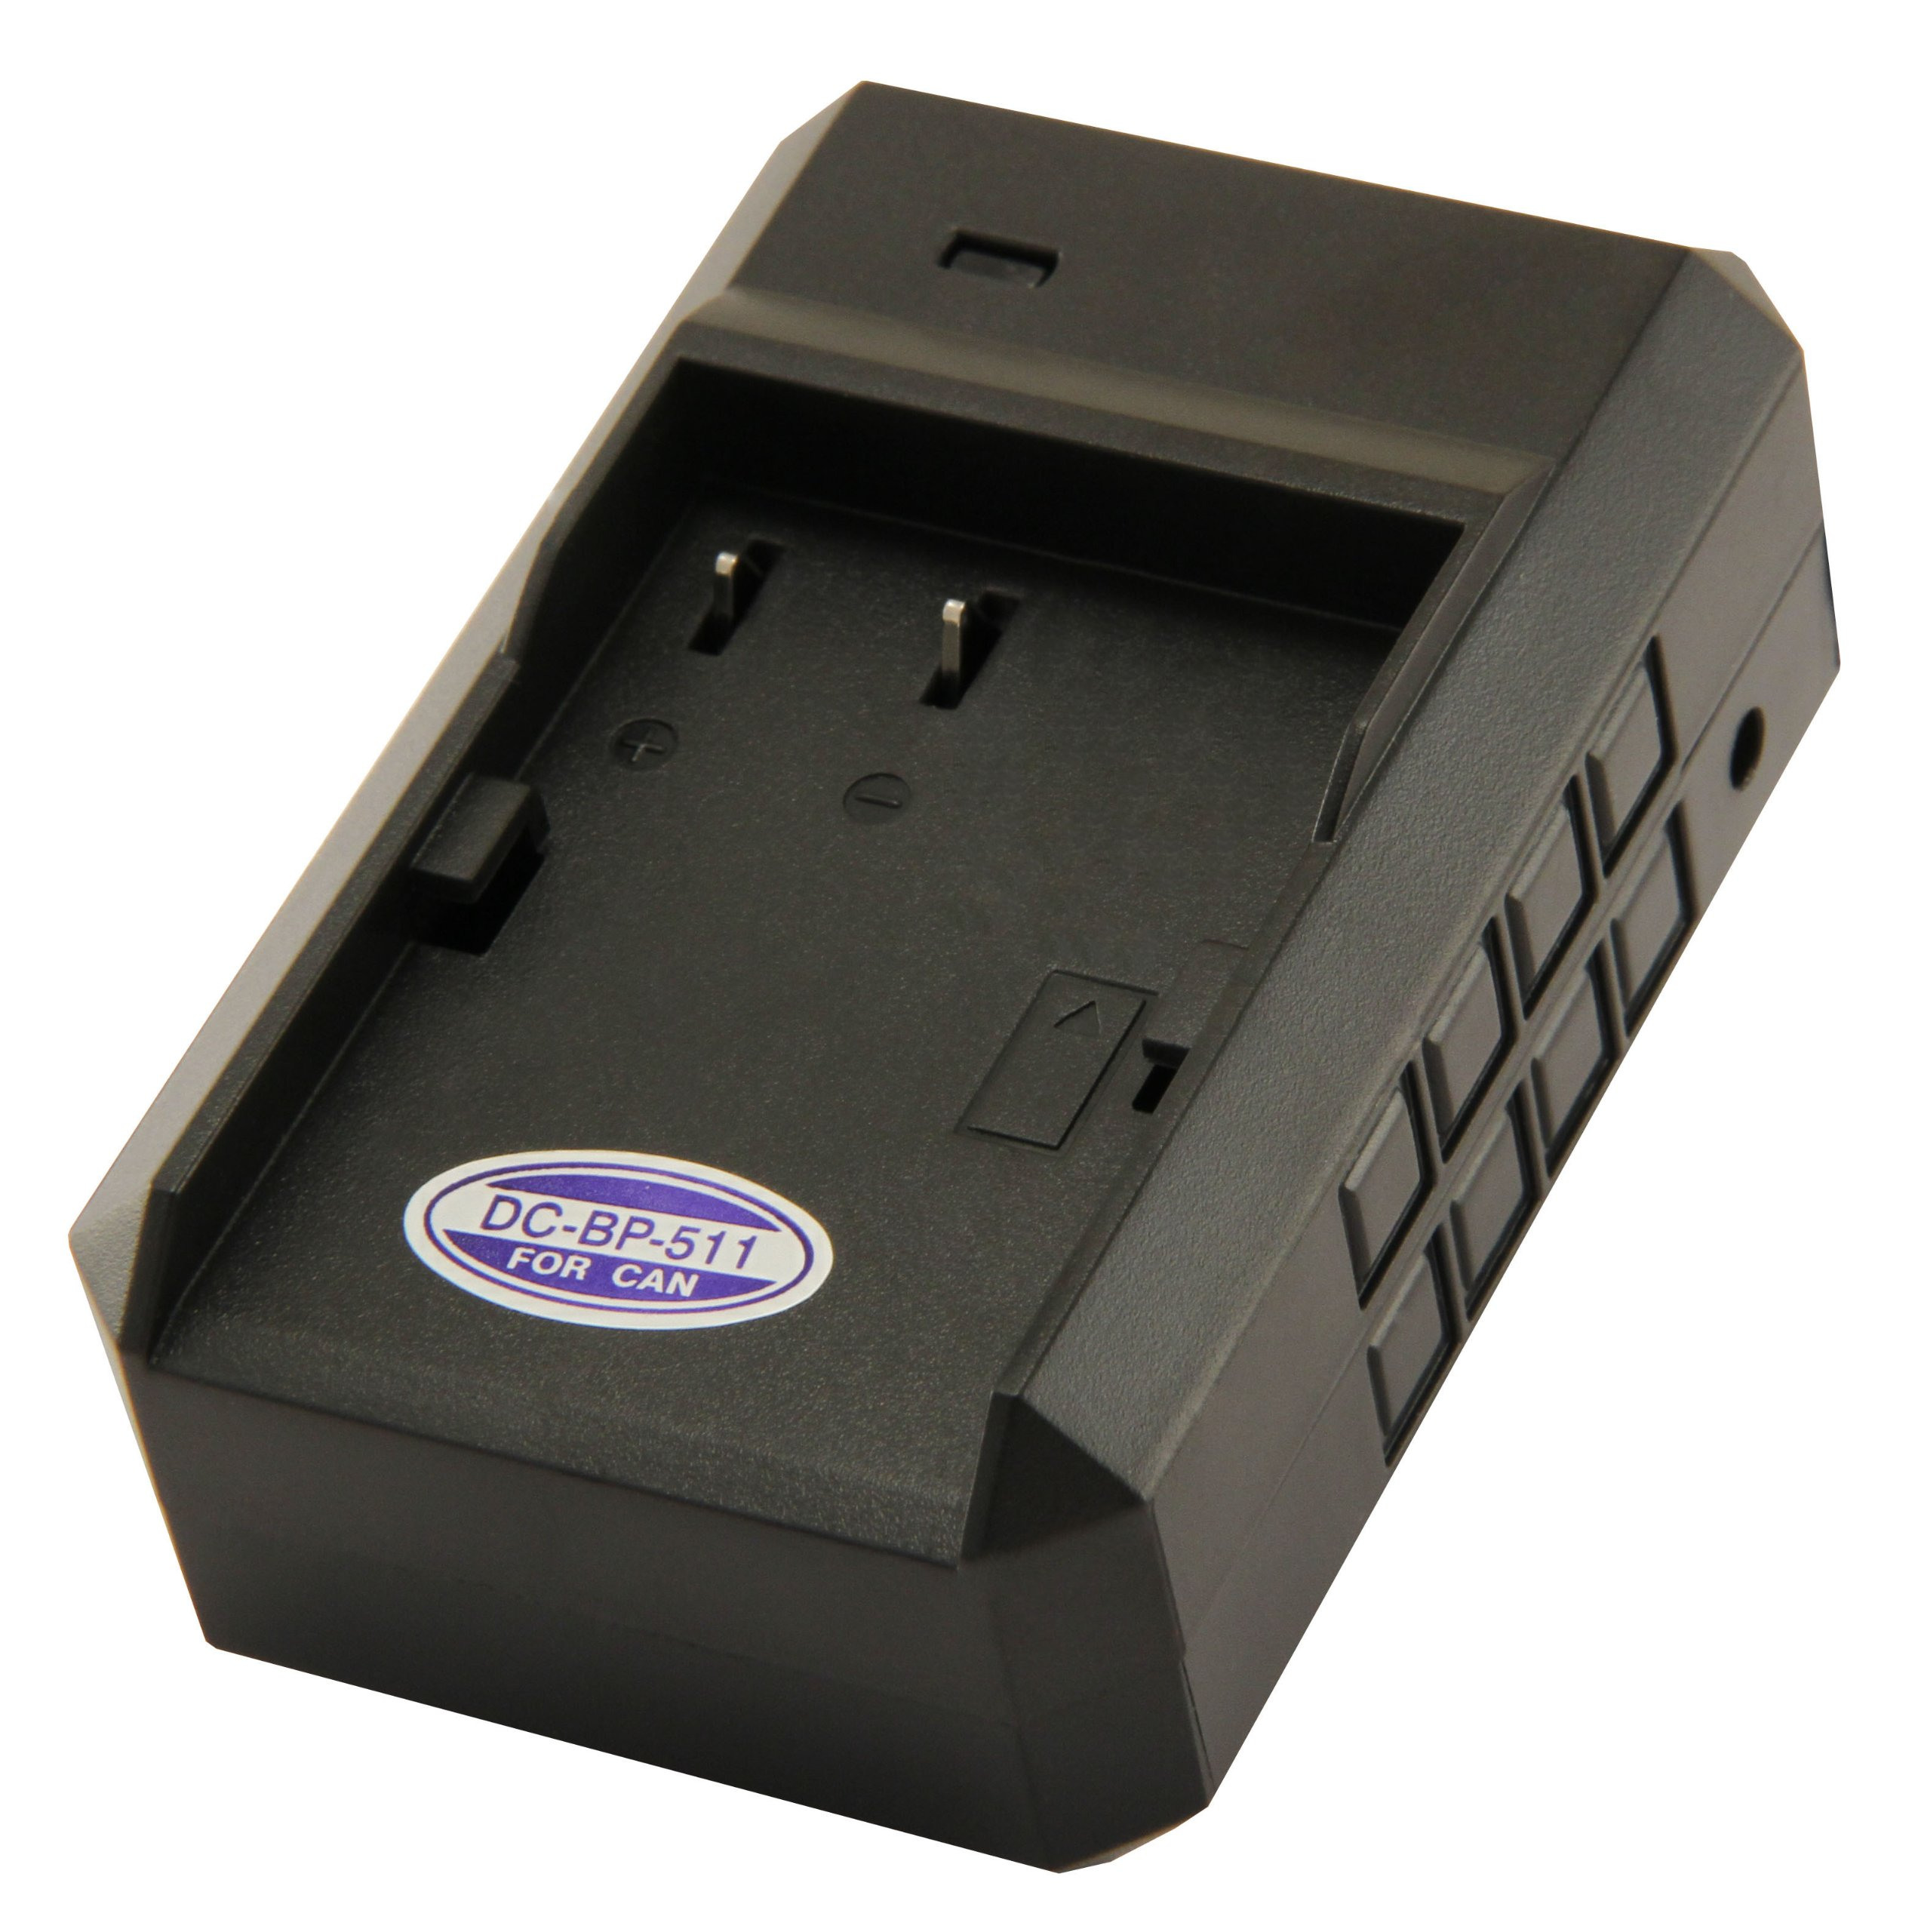 STK CB-5L Canon BP-511 BP-511A Battery Charger - for Canon EOS-5D, Canon EOS-40D, Canon EOS-50D, Canon EOS-20D, Canon EOS-30D, Canon EOS-1D, Canon EOS-10D, Canon EOS-Digital Rebel, Canon EOS-D60, Canon EOS-300D, Canon EOS-D30, Canon EOS Kiss, Canon Powers